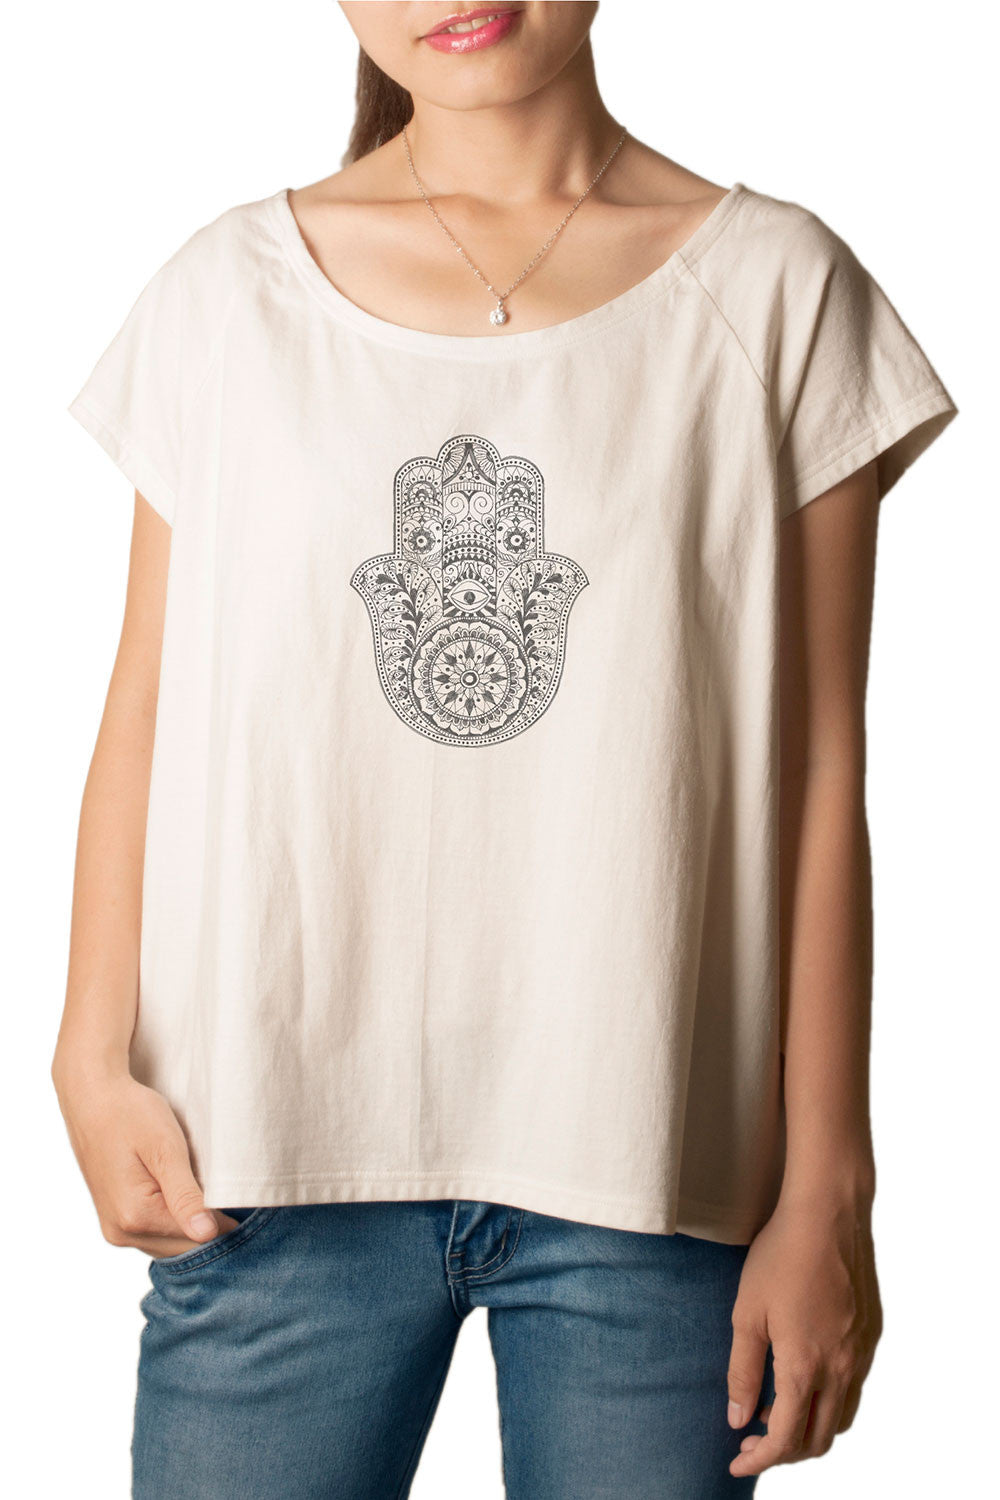 Women's Hamsa Hand Printed cotton T-shirt  Tee WTS_01